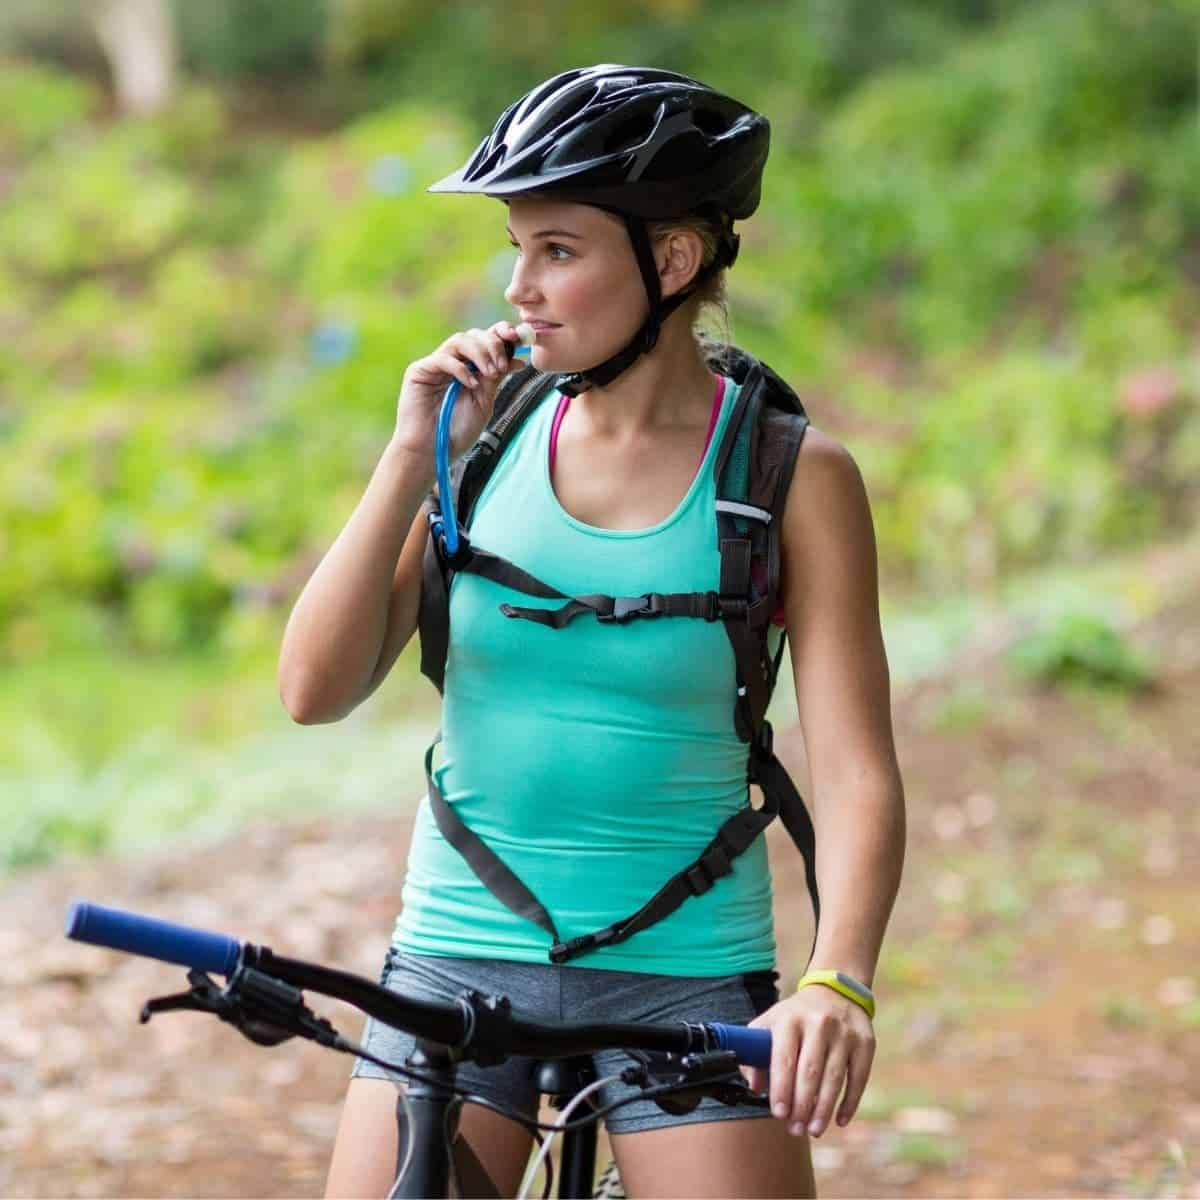 Woman on a bicycle and drinking from a hydration pack.